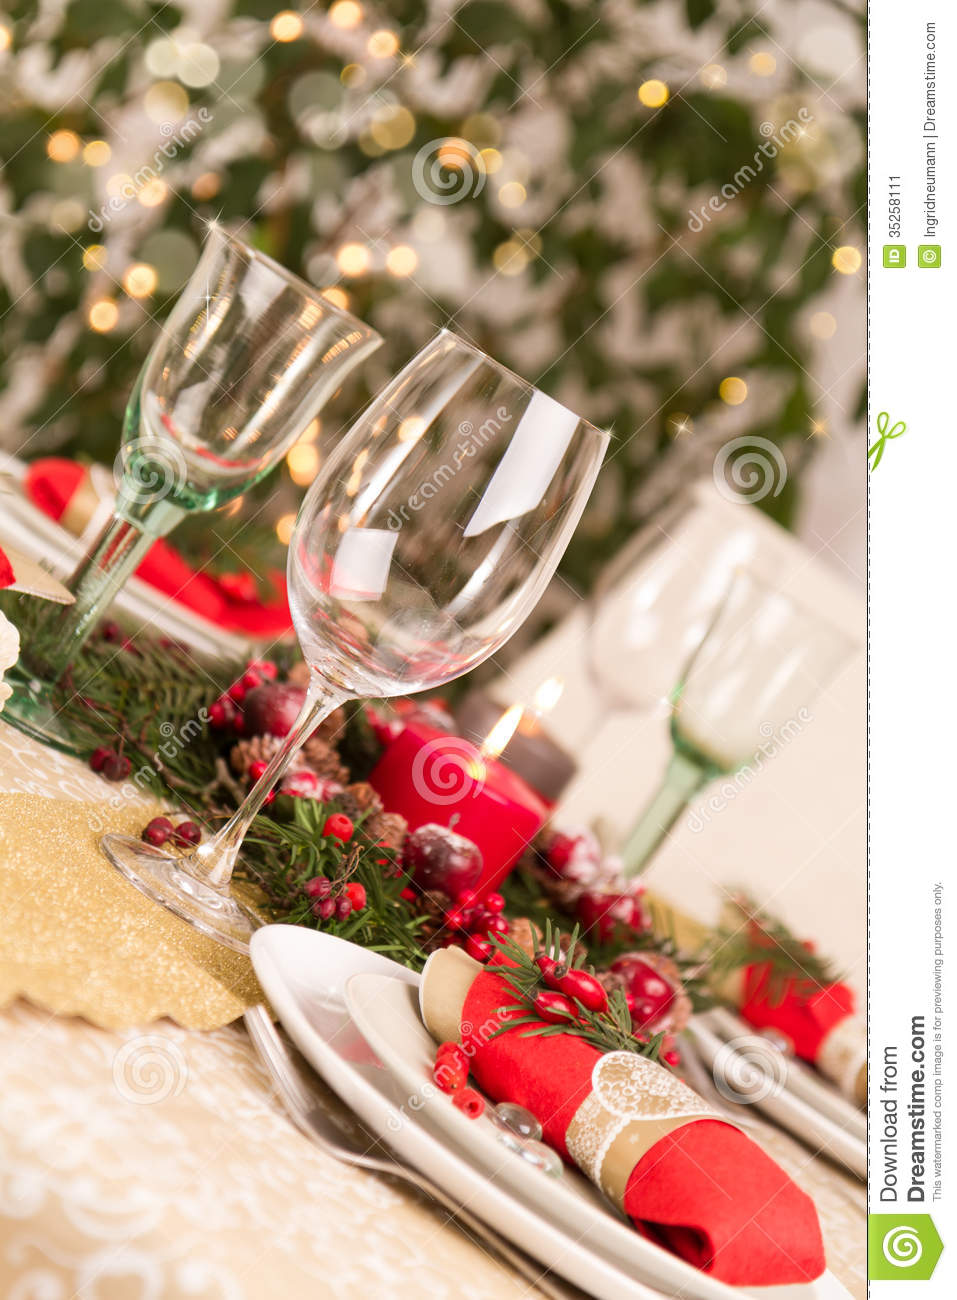 Christmas Table Setting With Holiday Decorations Stock Image  Image 35258111